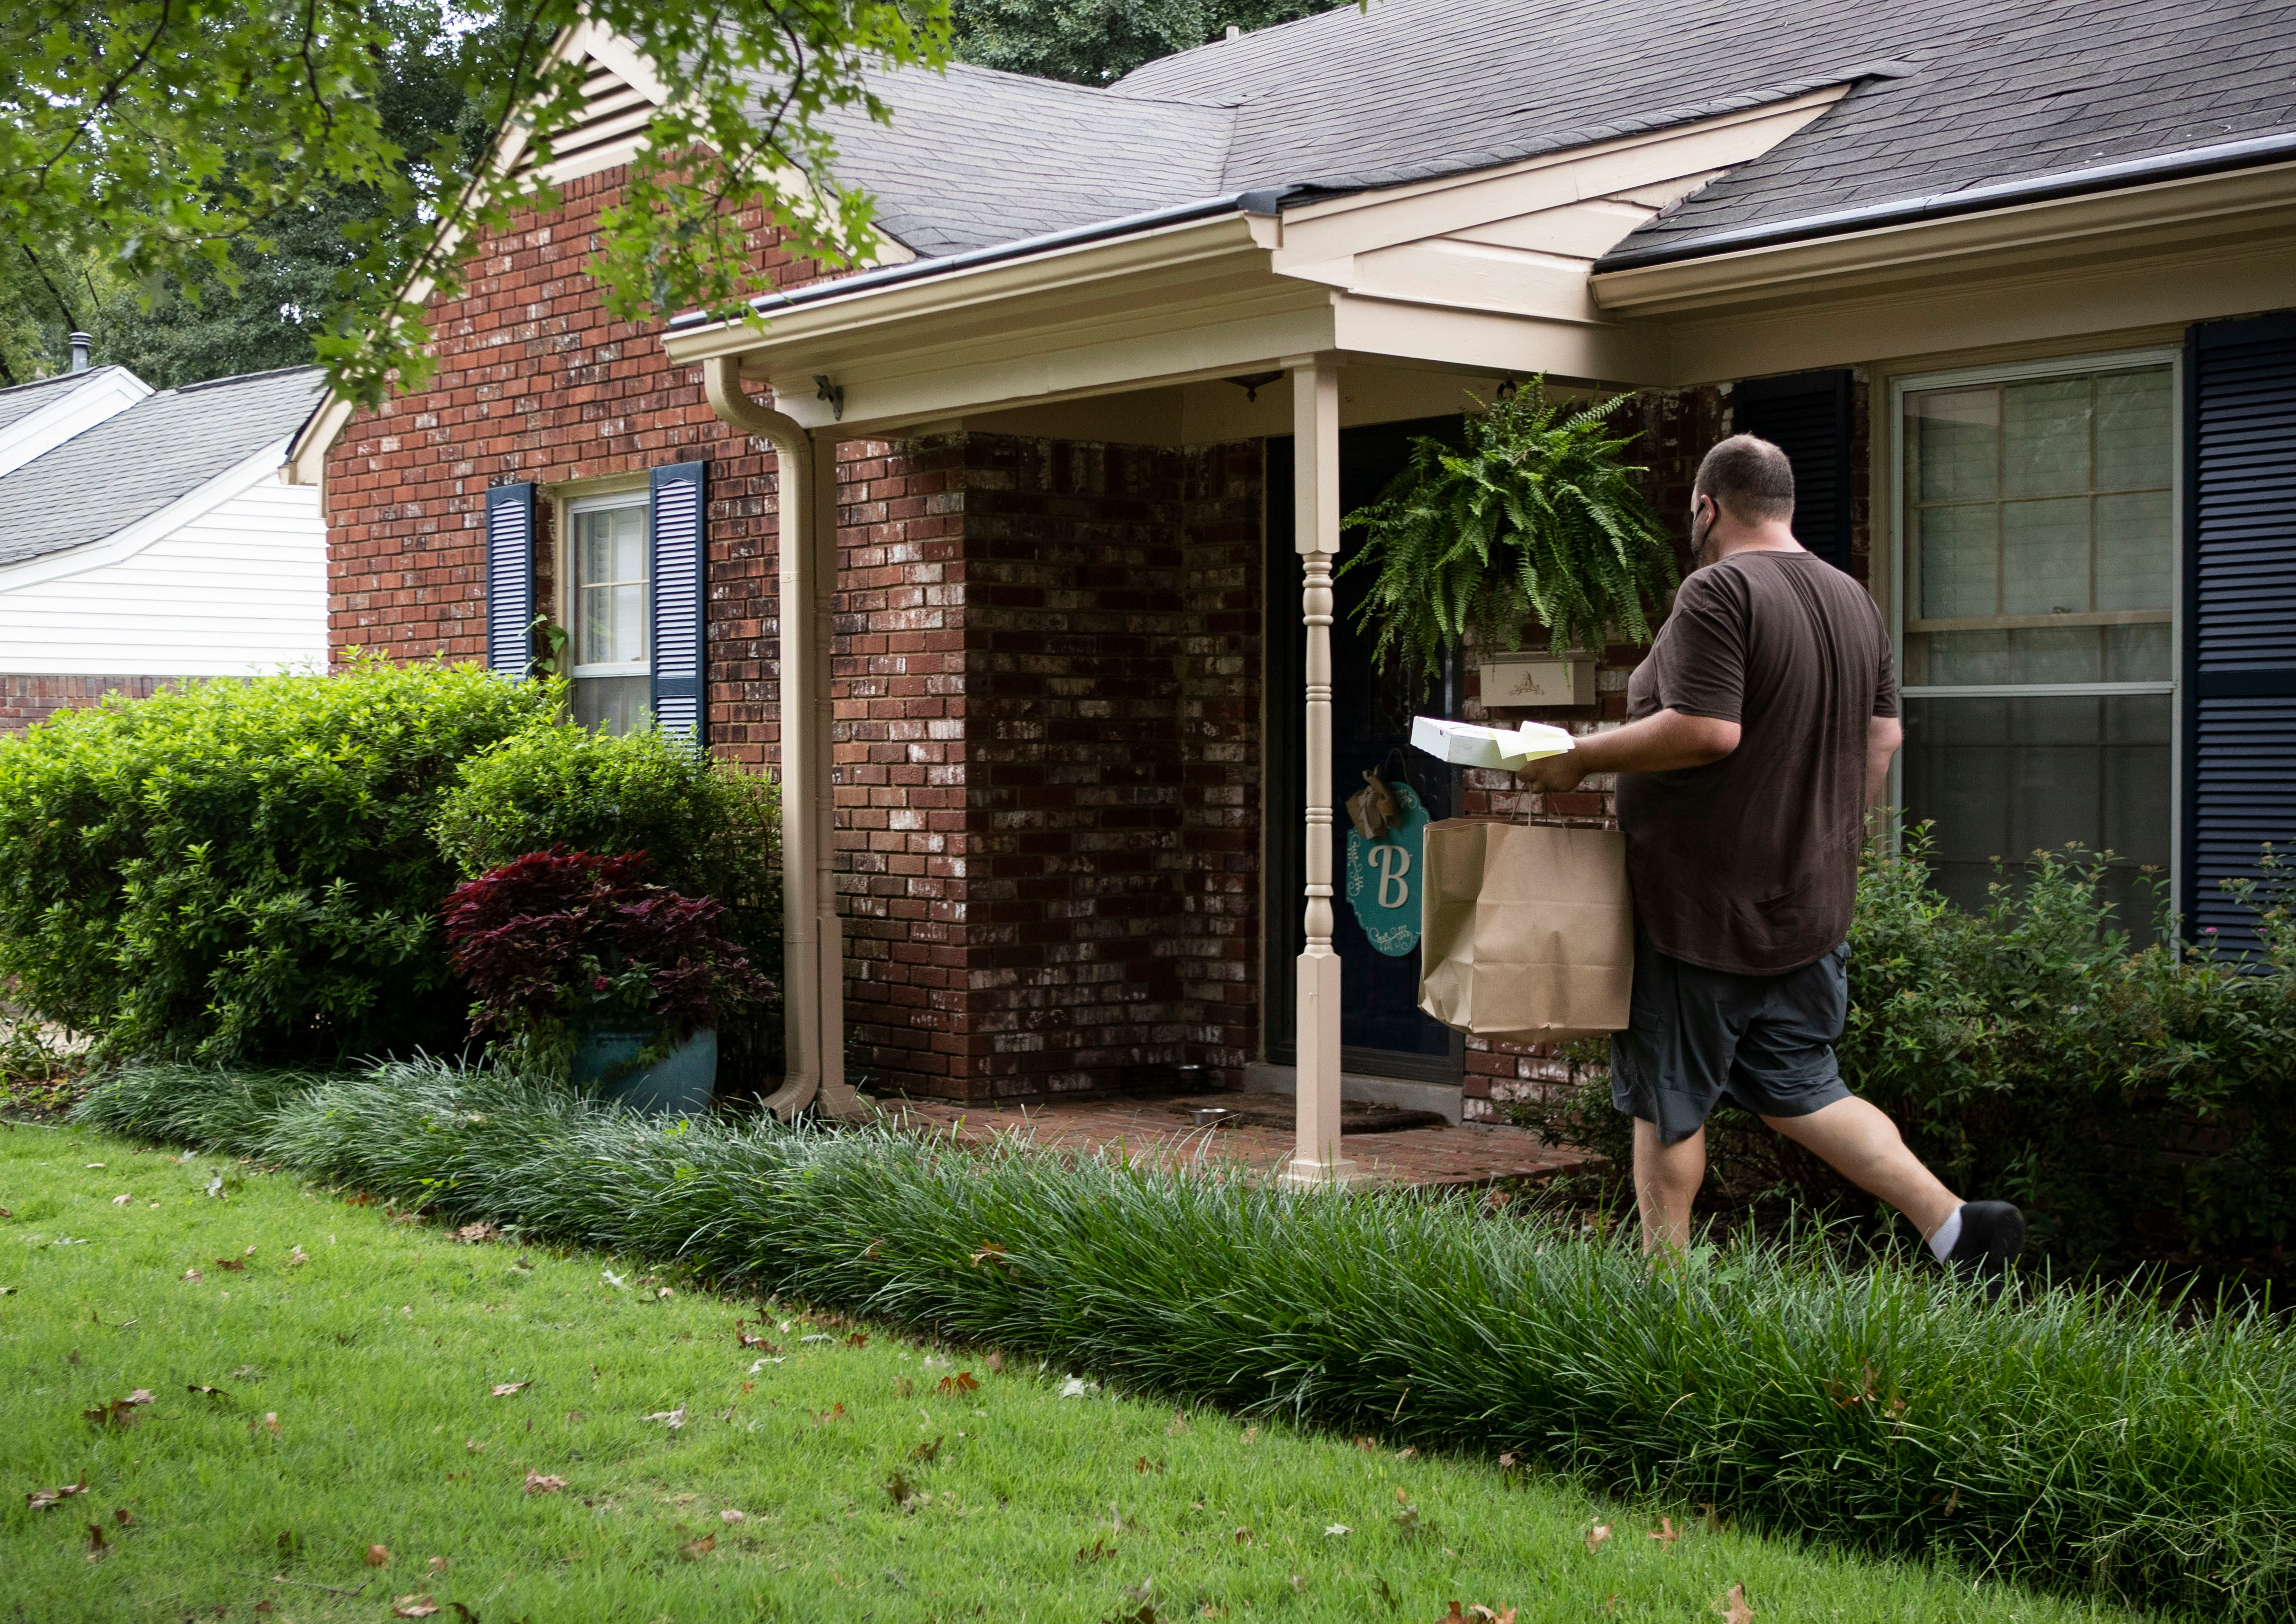 Pete and Sam's delivery driver Hunter Burkes delivers a  pizza to a customer's door during his shift in Memphis, Tenn., on Tuesday, September 1, 2020.